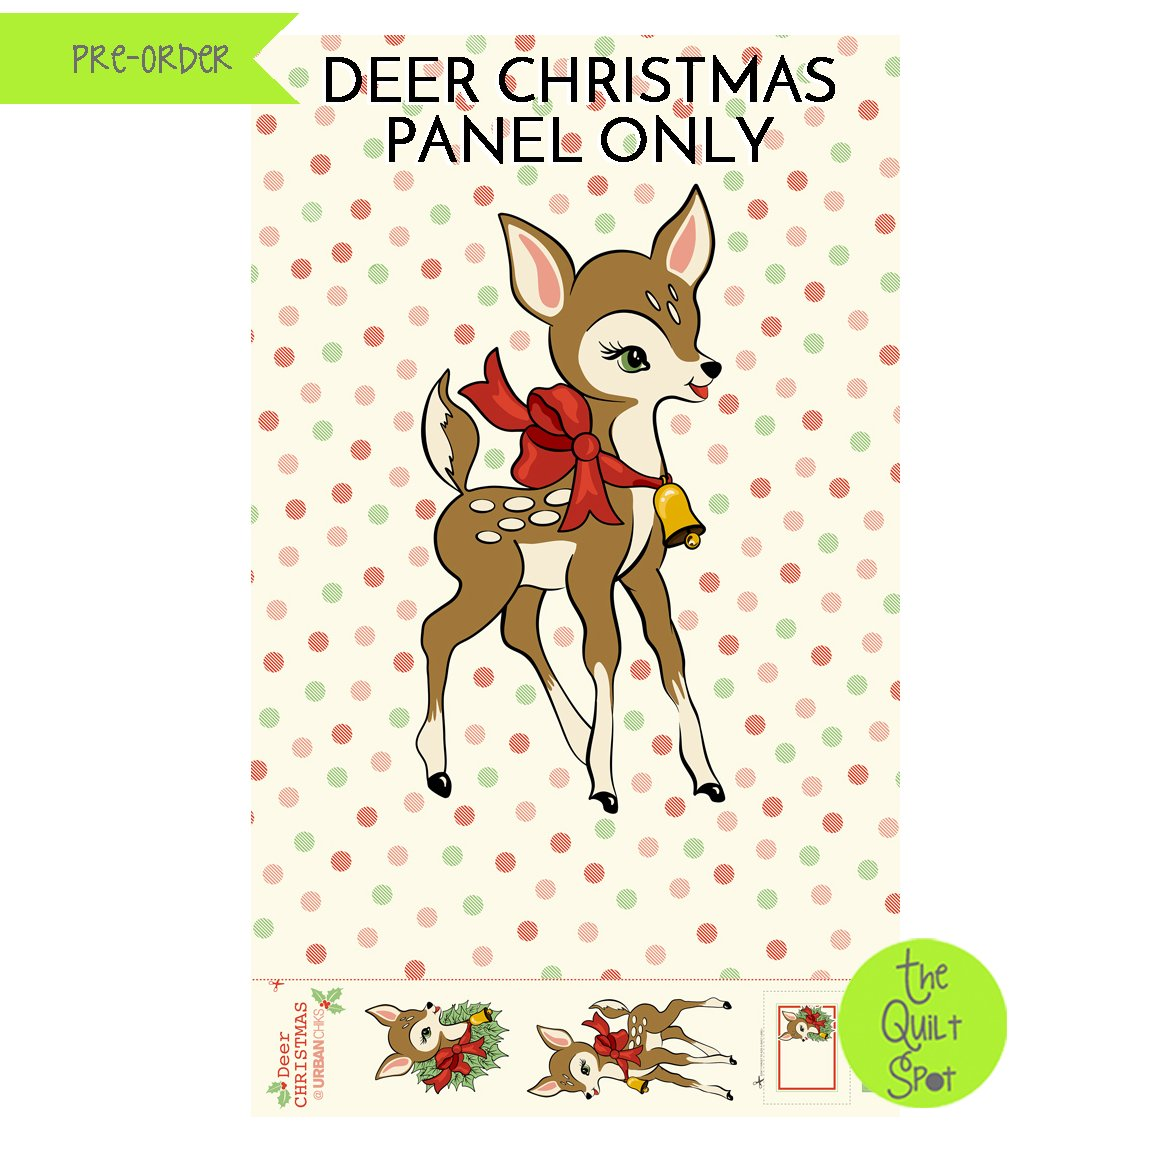 Deer Christmas Deer Panel Only